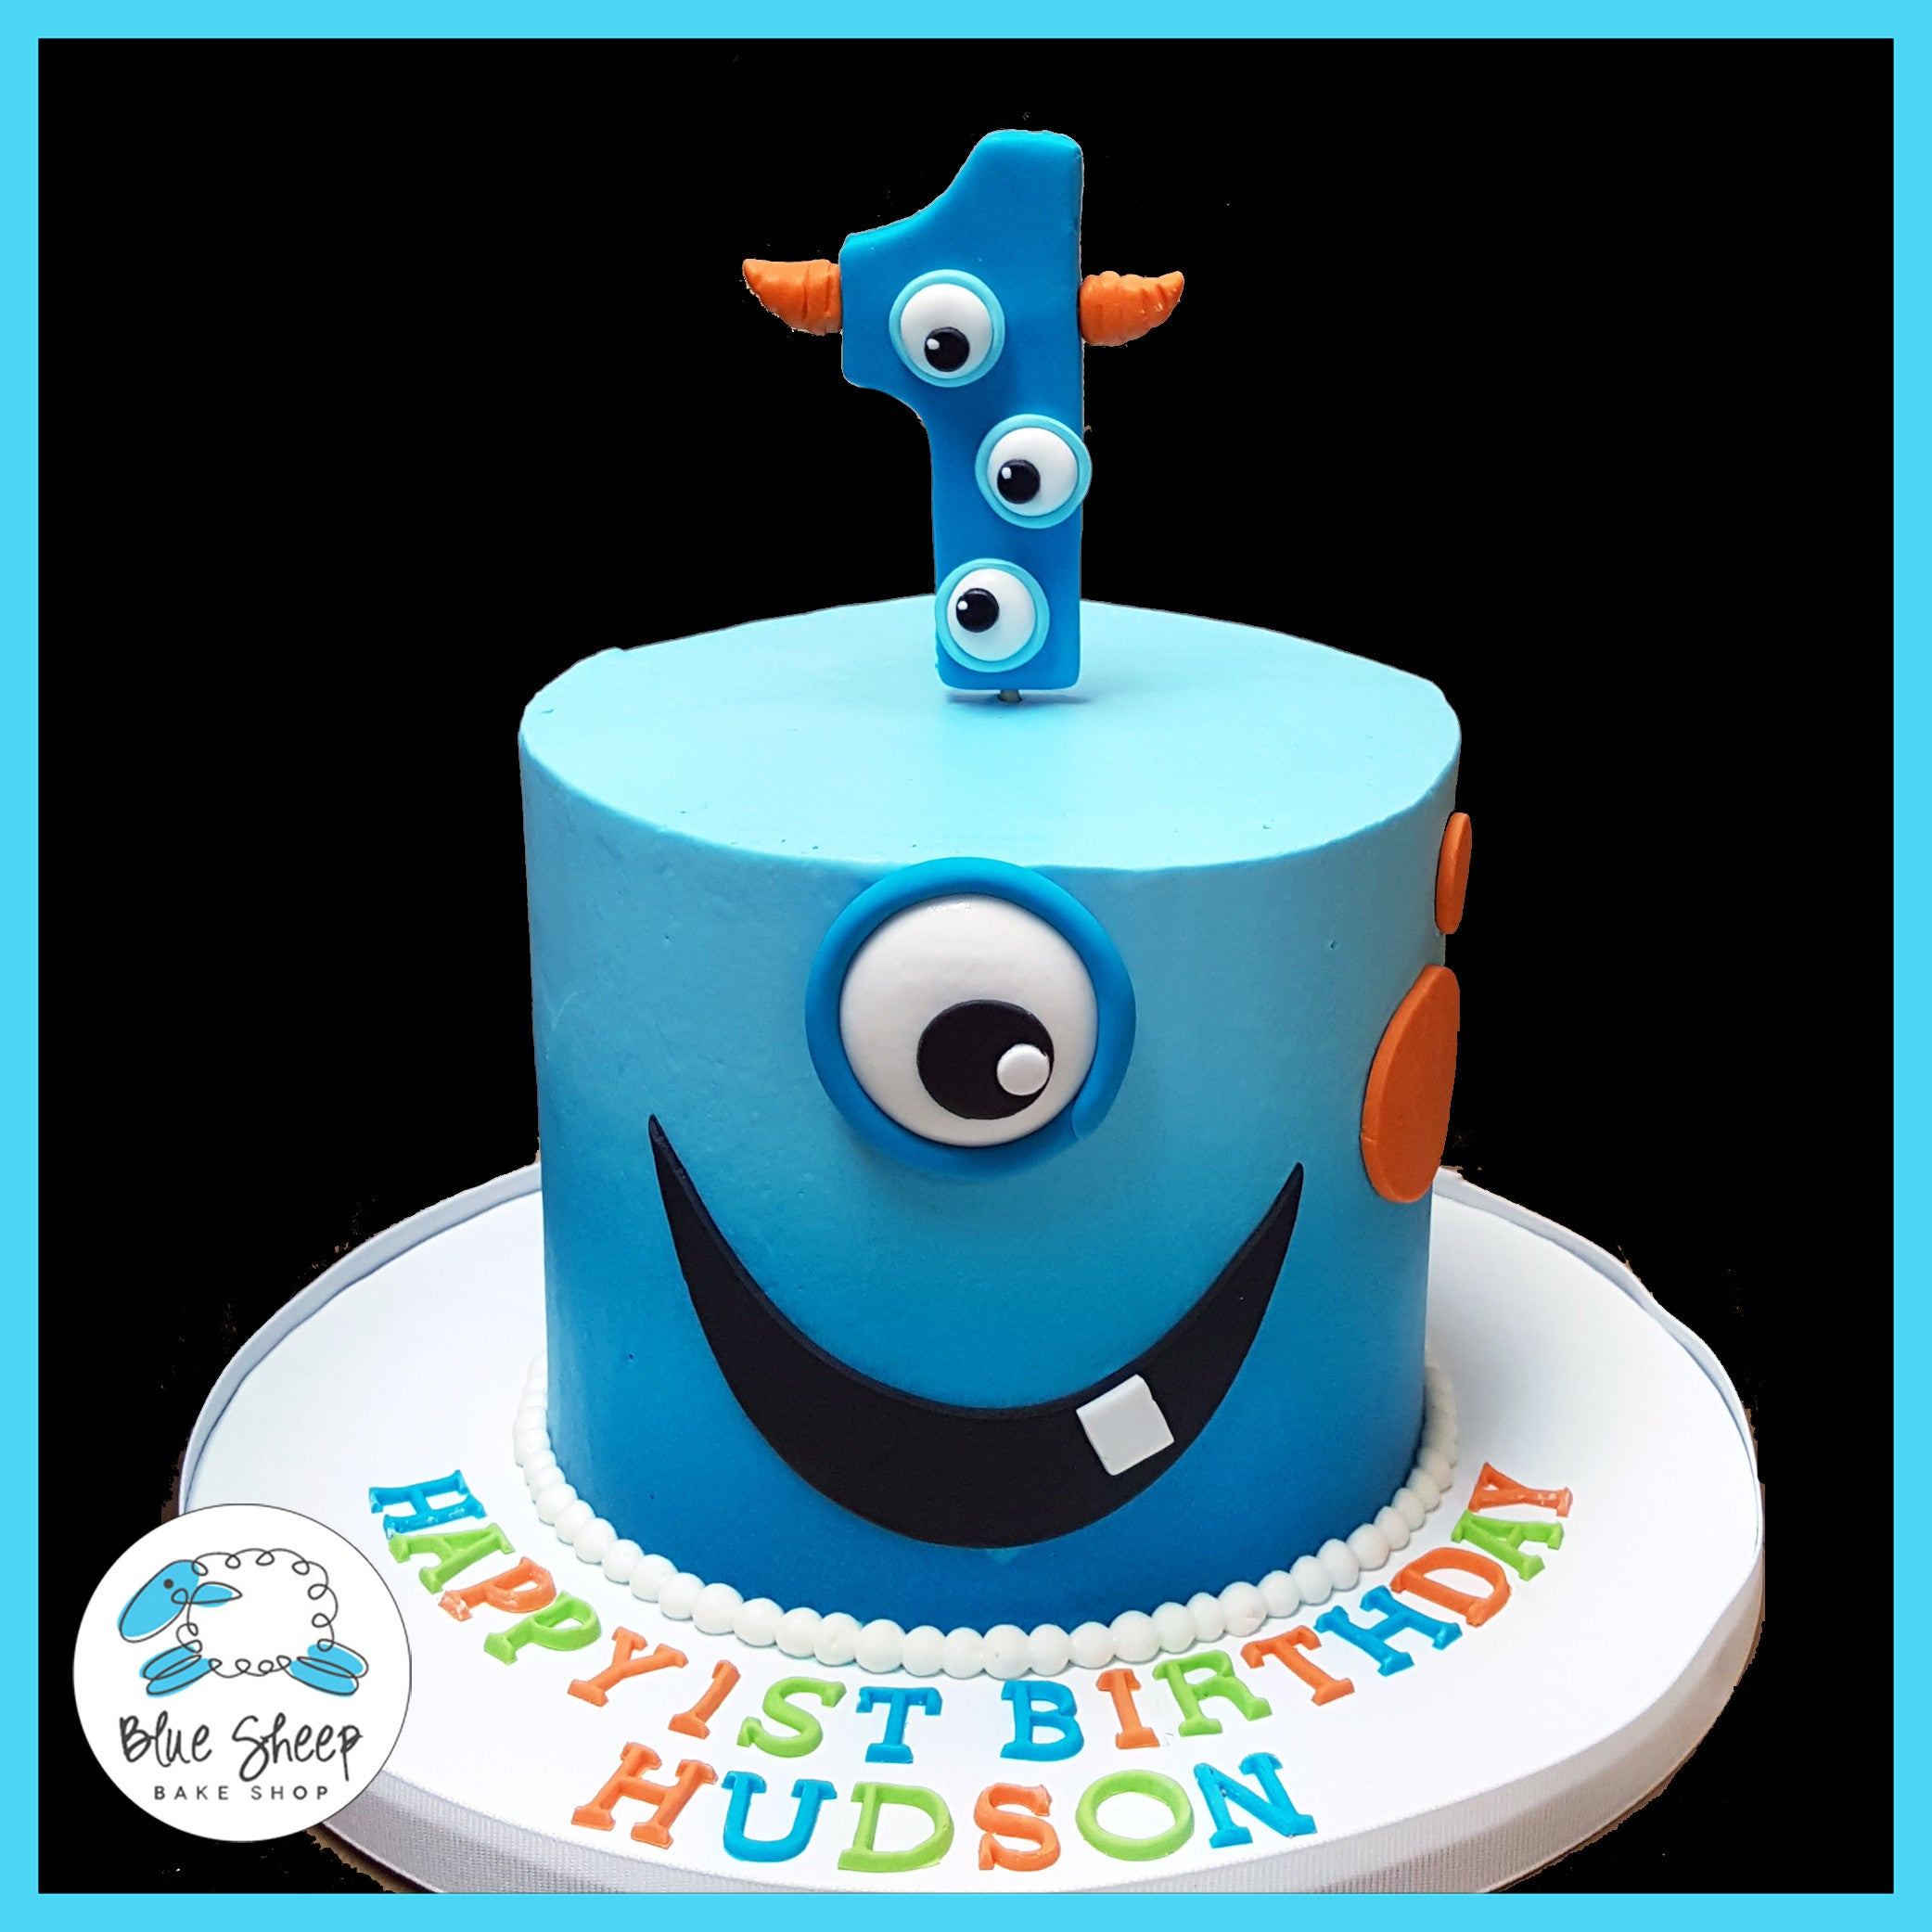 Swell Hudsons 1St Birthday Monster Smash Cake Nj Blue Sheep Bake Shop Funny Birthday Cards Online Elaedamsfinfo